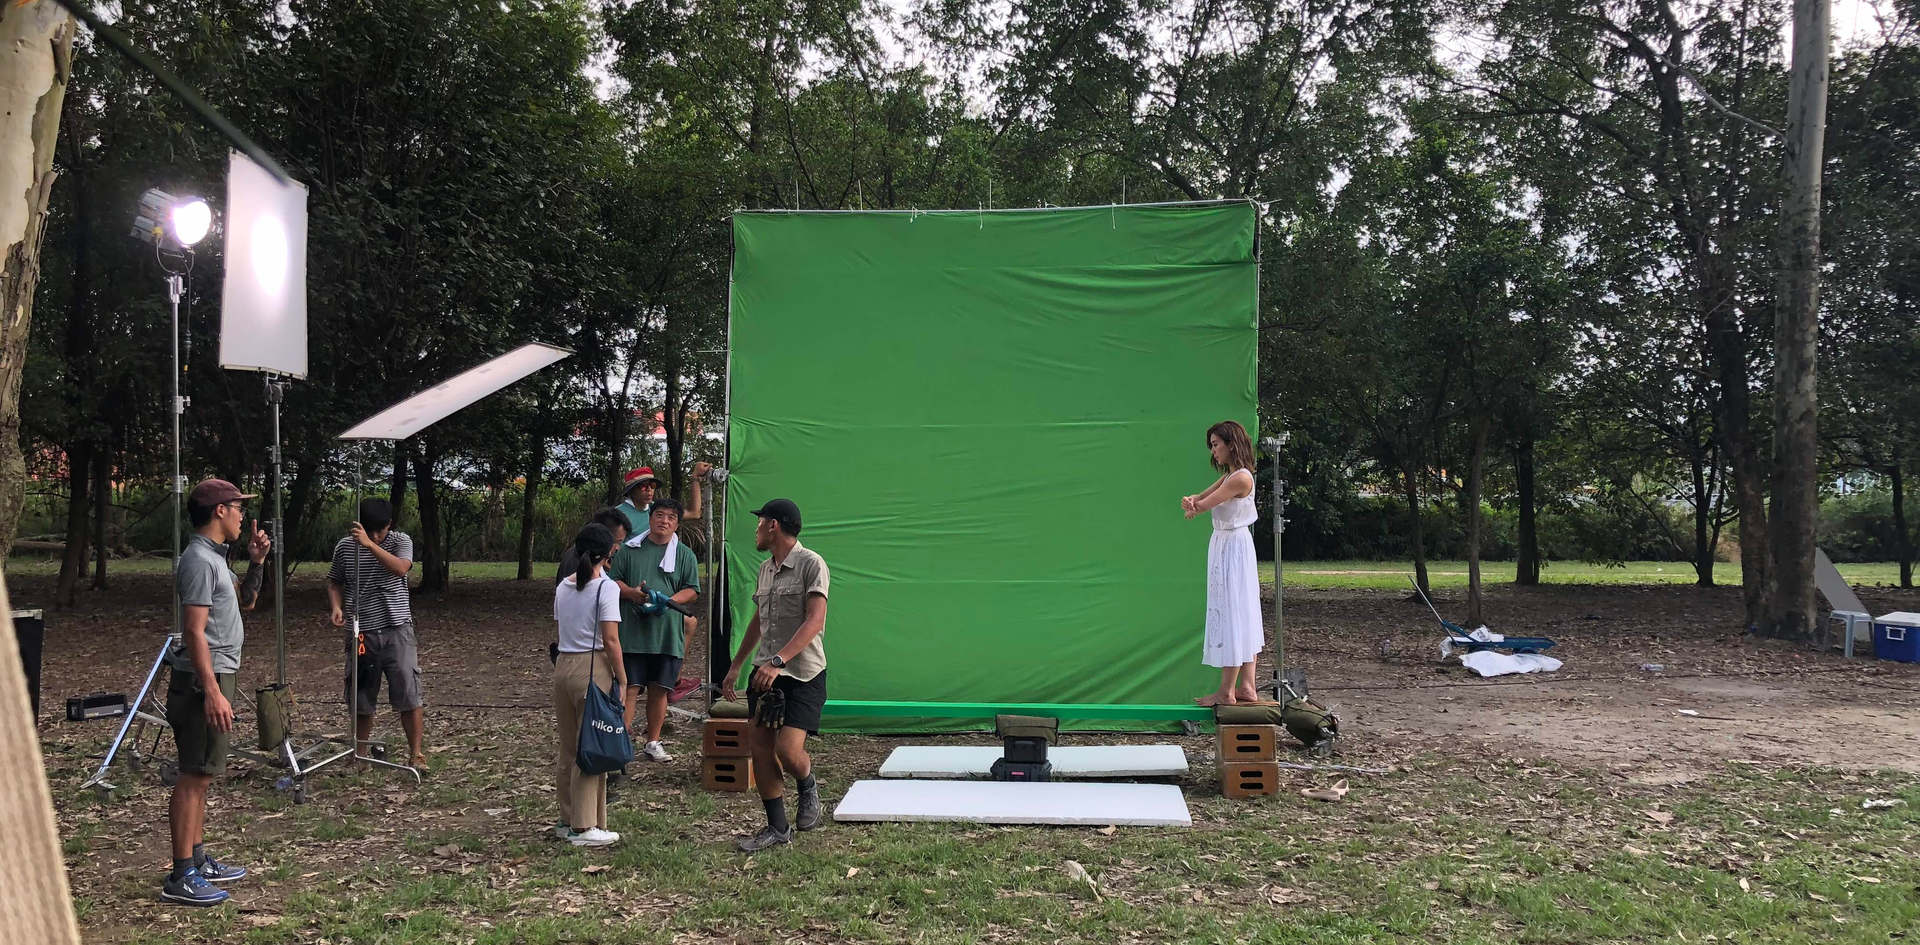 Chroma Key set up at nature - by Plan B Film Production